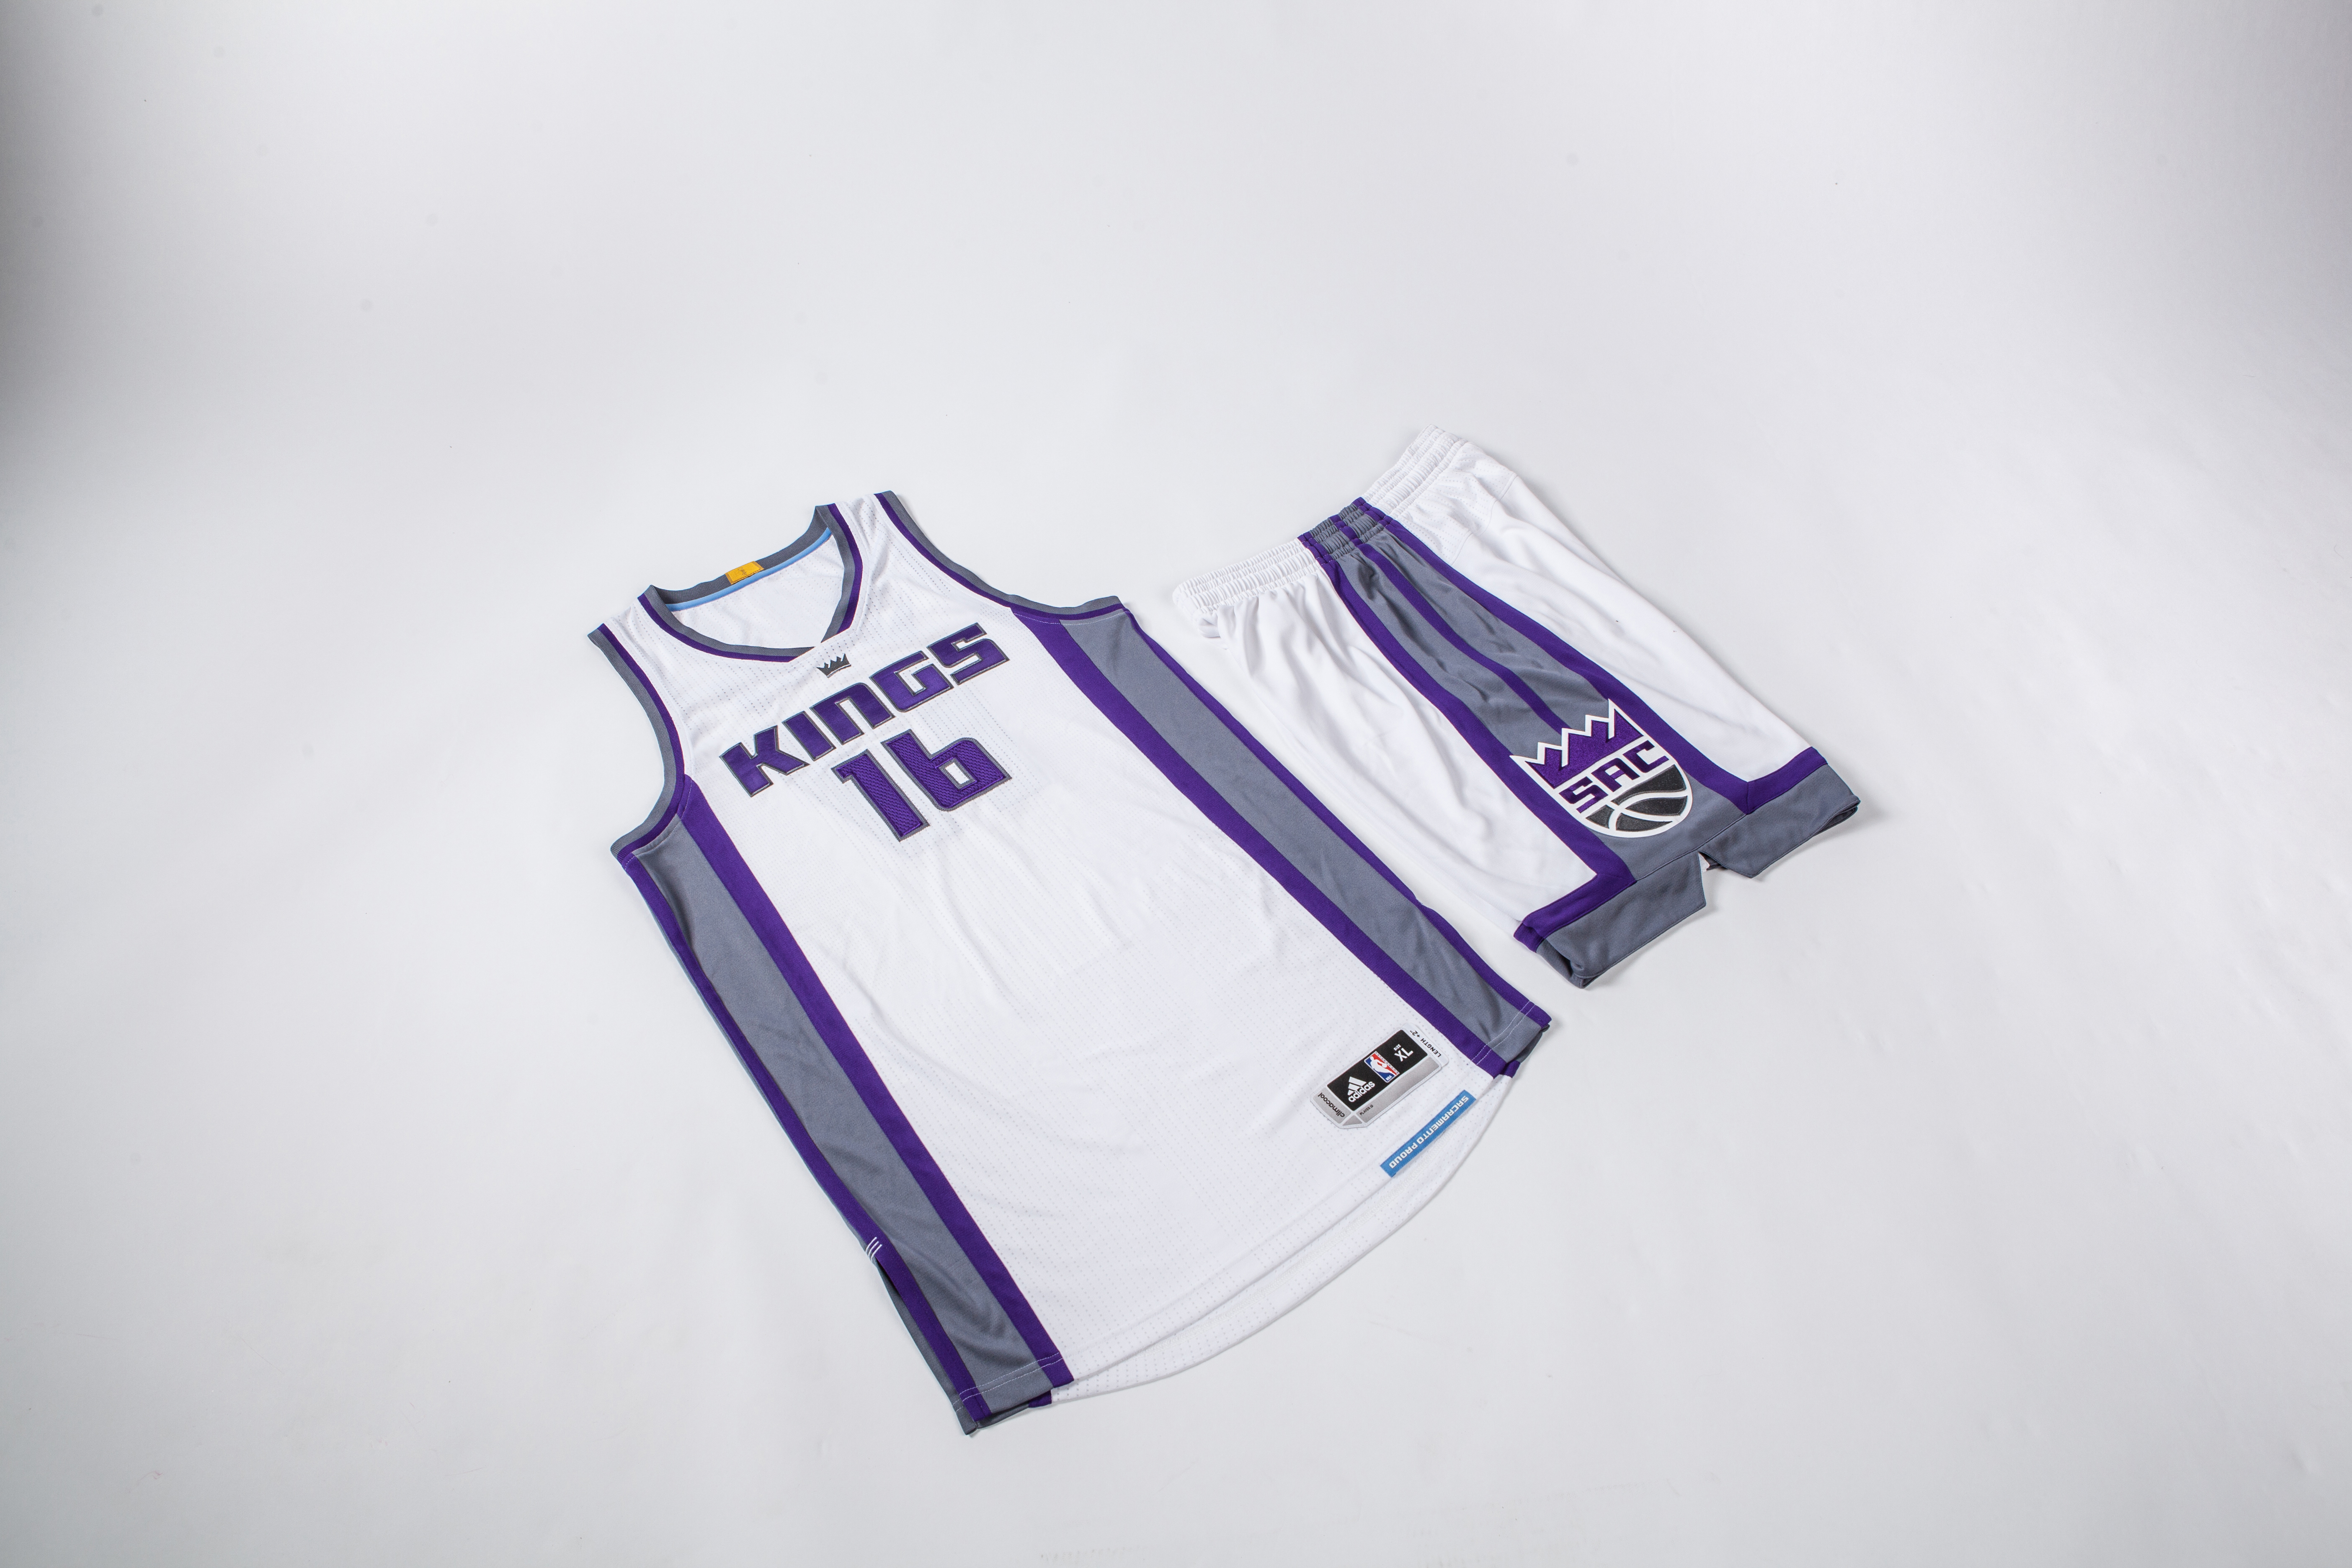 ee0d3ab28 ... Throwback NBA Jerseys Playbuzz Sacramento Kings officially unveil new  jerseys for 2016-17 s ...